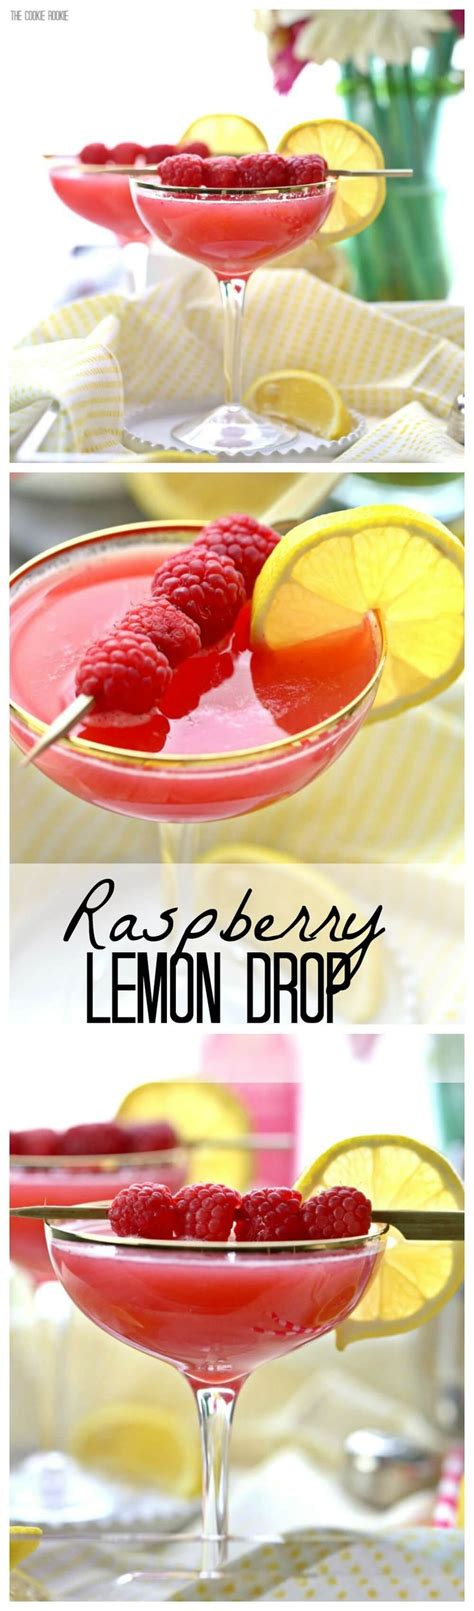 raspberry lemon drop martini 17 best images about aahhhhhh on pinterest cats shirley